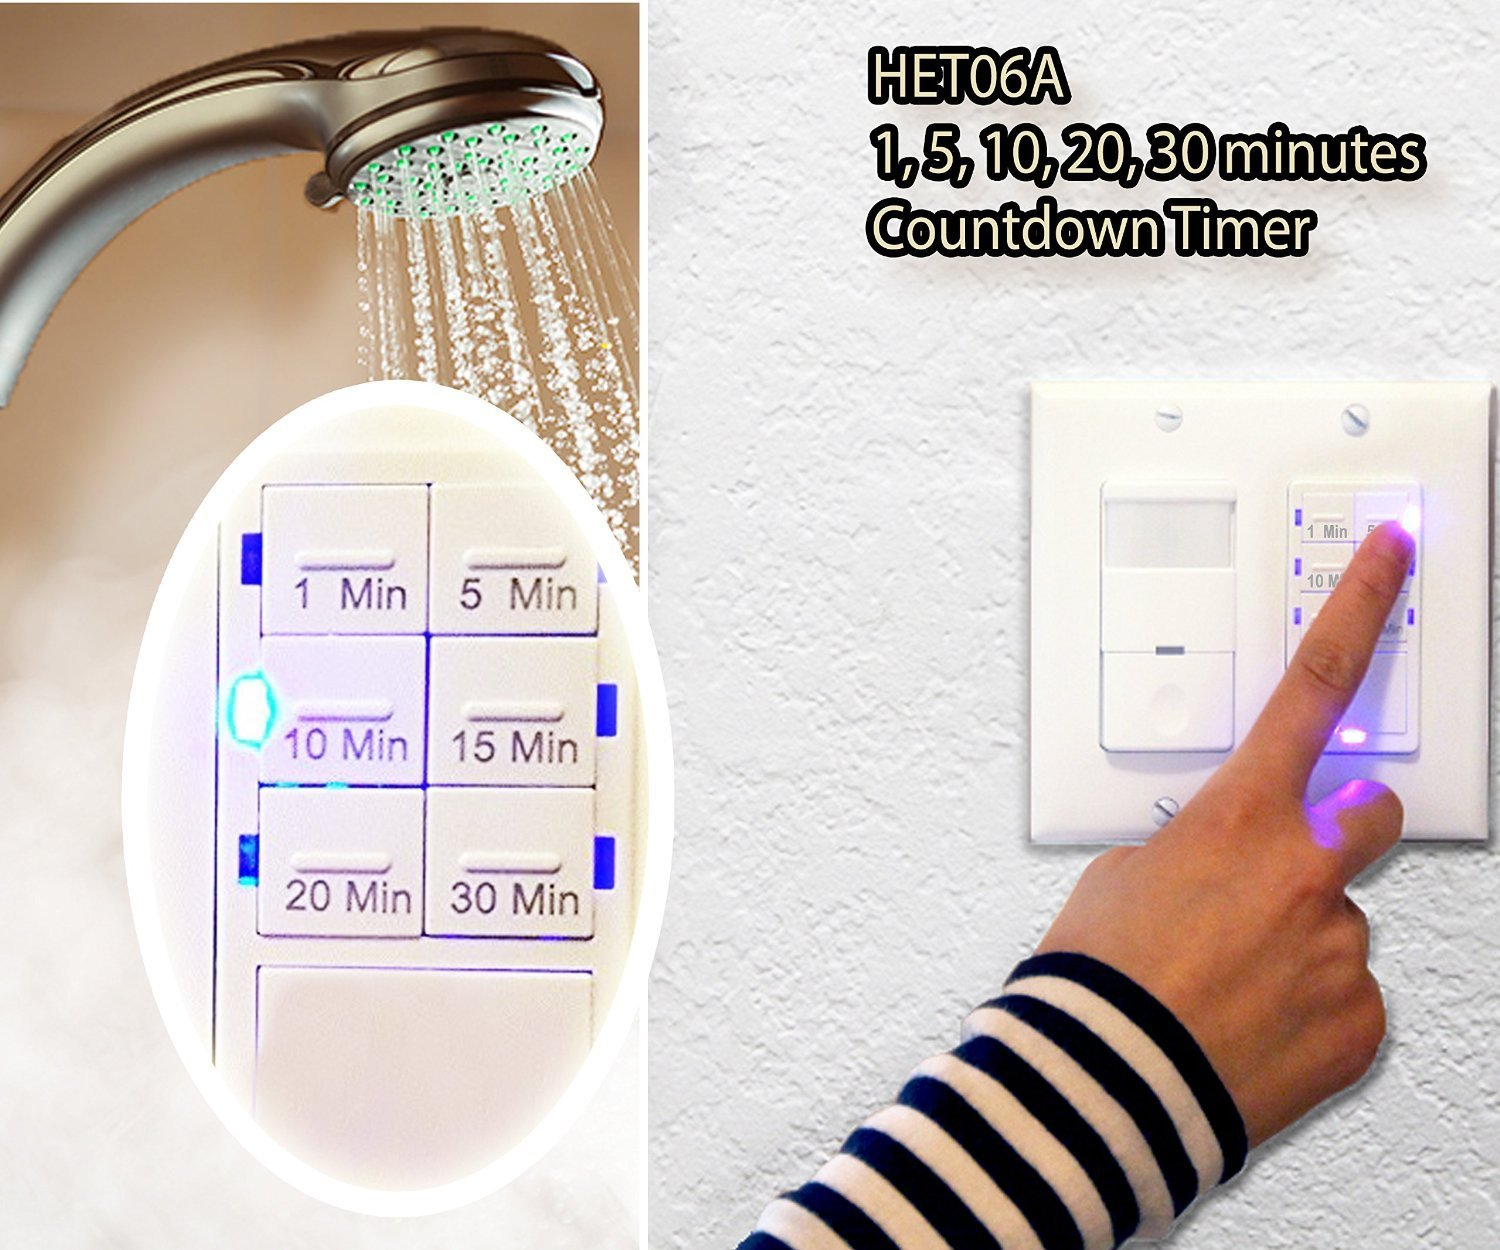 Bathroom Exhaust Fan With Timer - Enerlites het06a countdown in wall timer switch for vent fan light 1 5 10 15 20 30 min led night light neutral required white walmart com